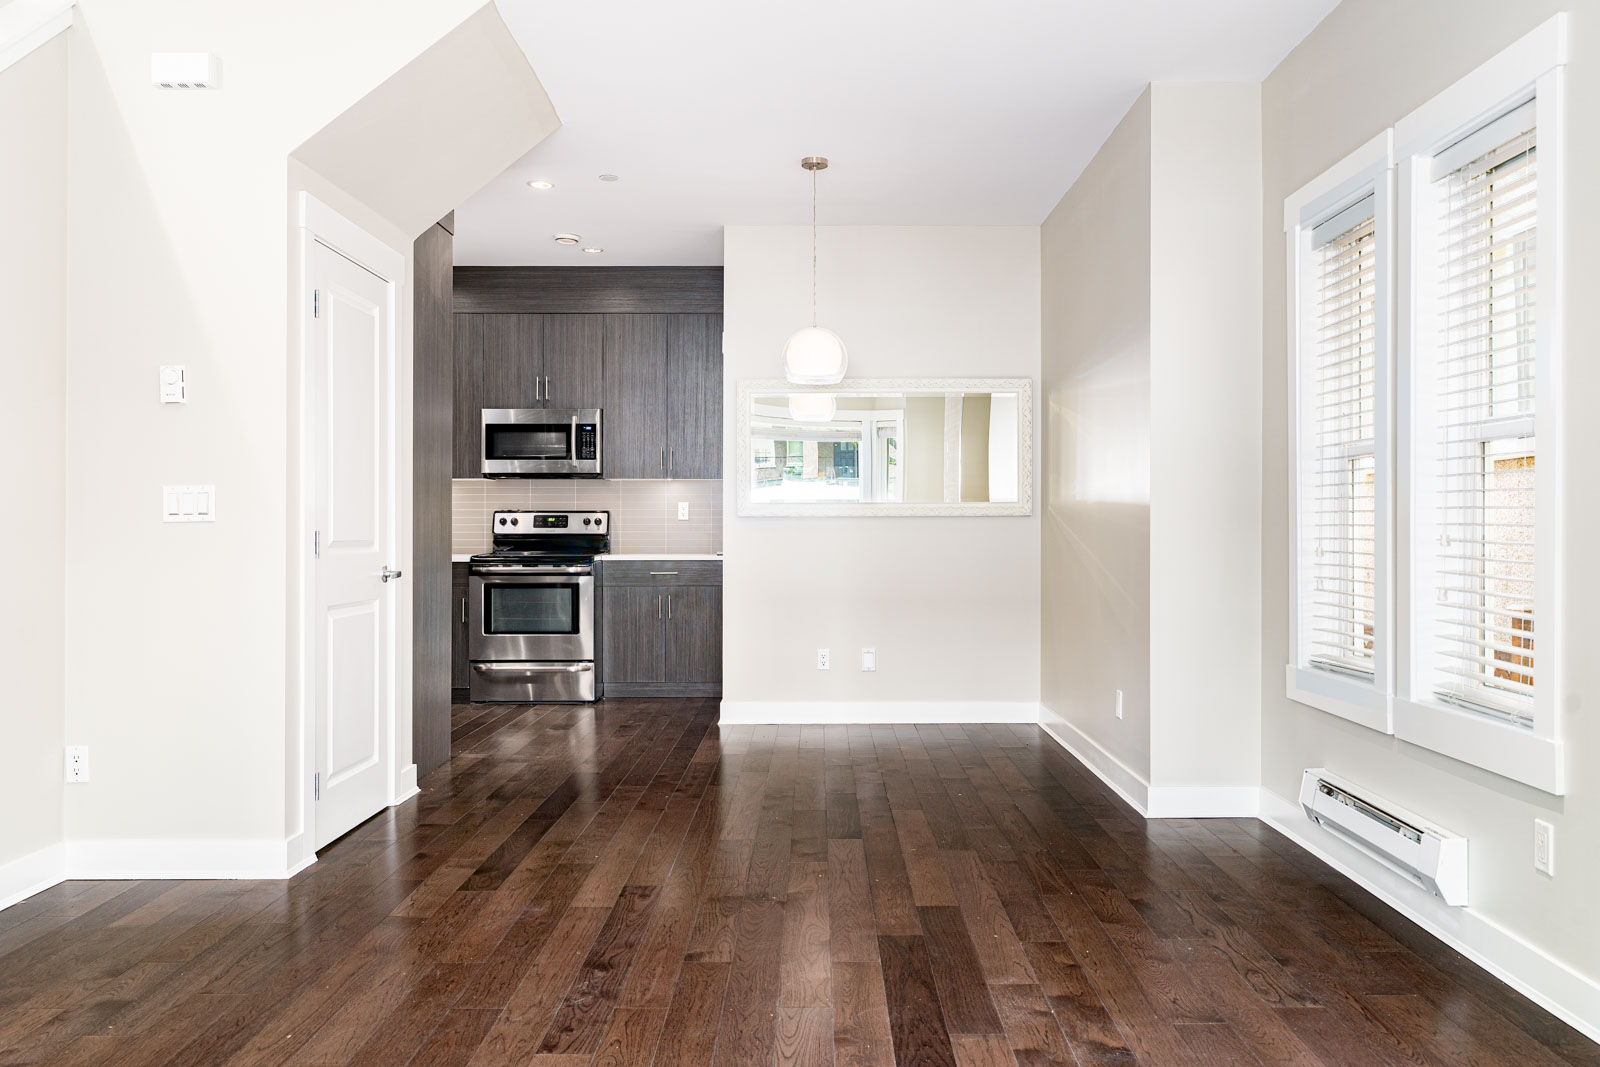 Open living area with dark hardwood floors and pale walls, showing kitchen entry and storage